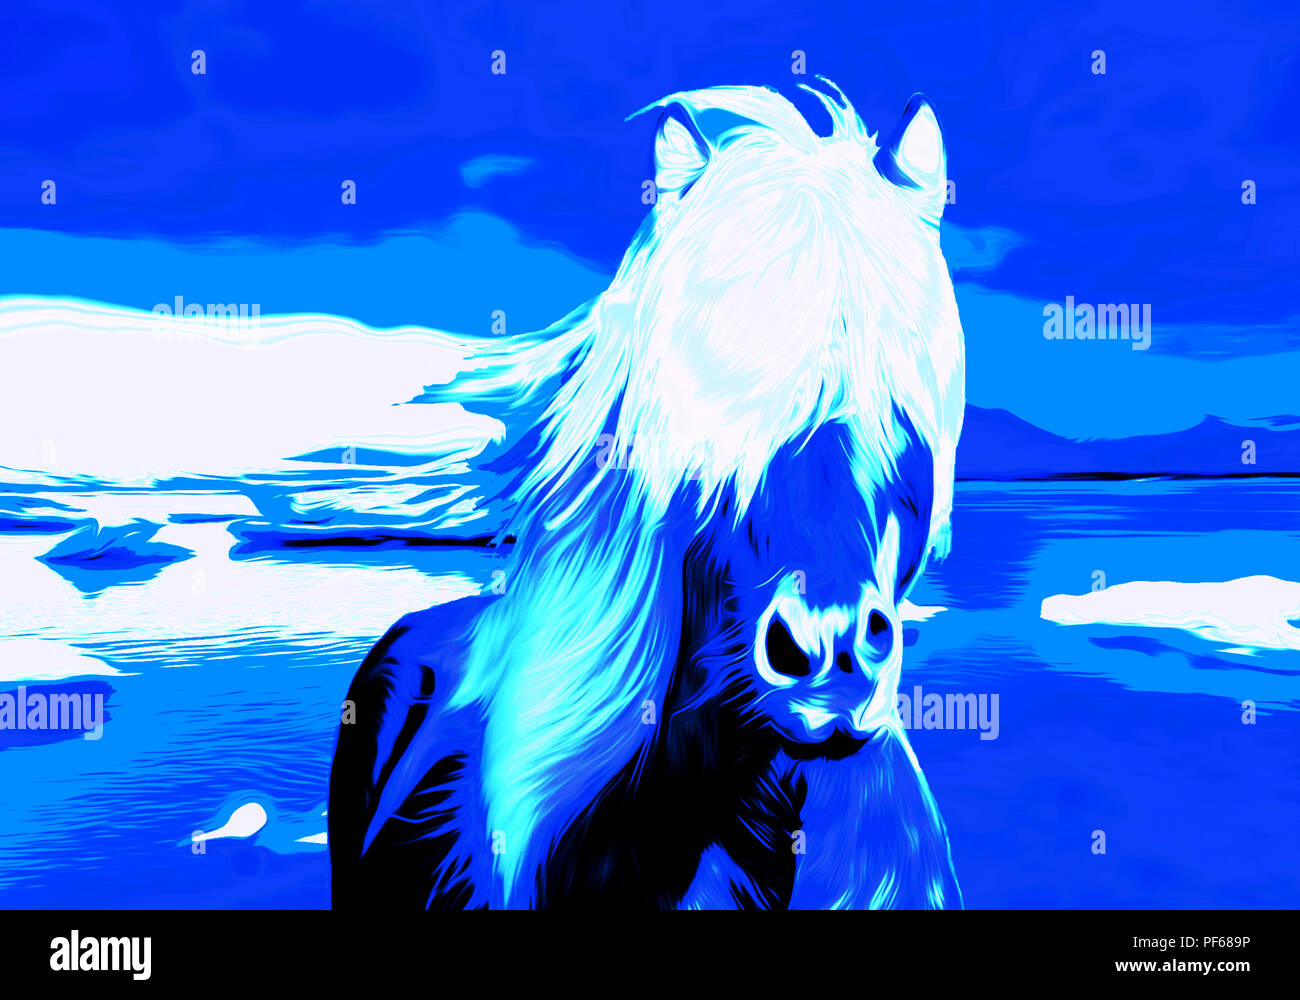 Winter Landscape With A Blue And White Fantasy Horse Running Stock Photo Alamy